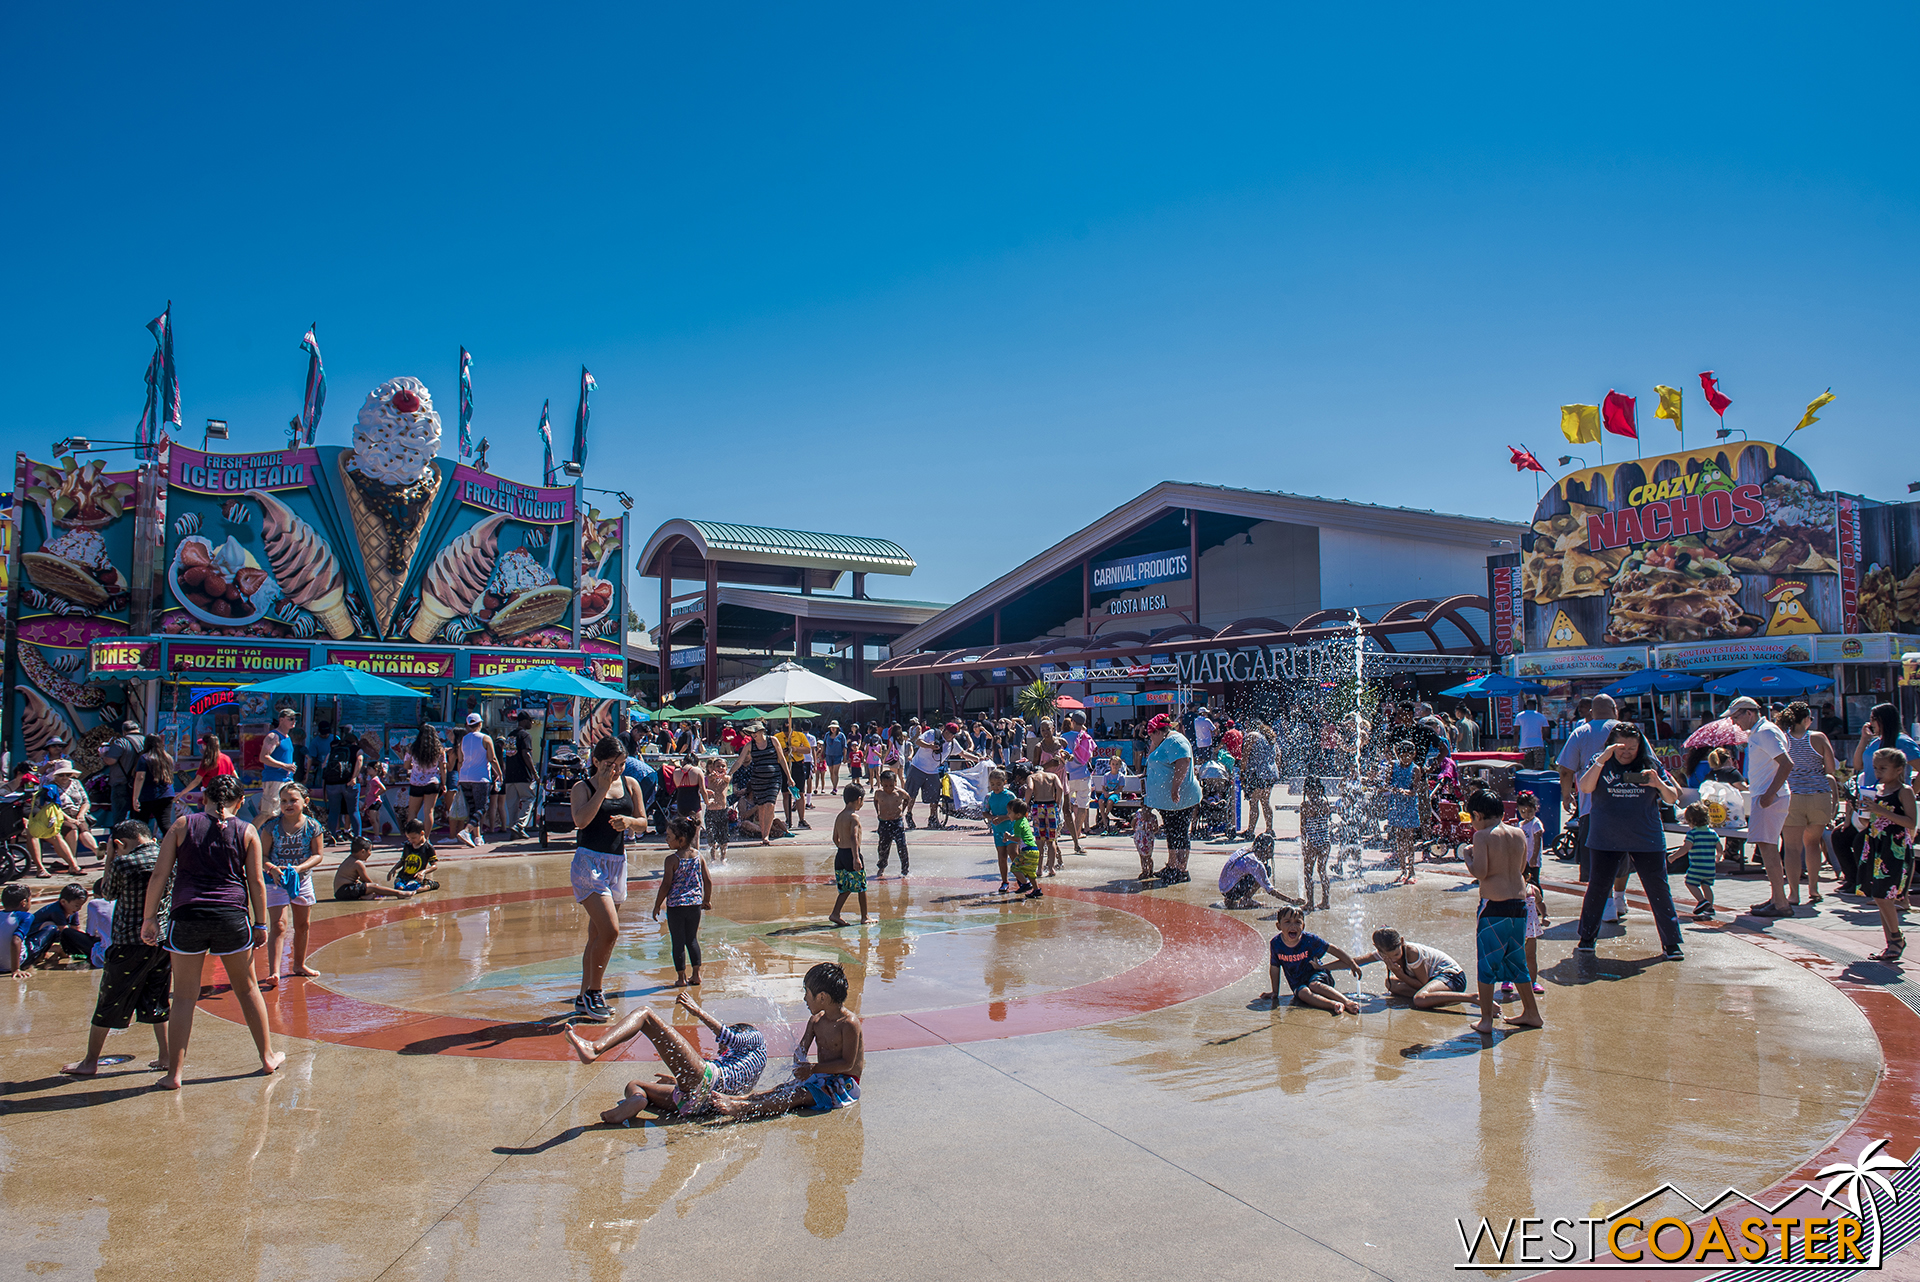 The fountain play zone in front of the Hangar is a popular spot for kids looking to beat the heat.  Germophobes may want to steer clear of the area, though.